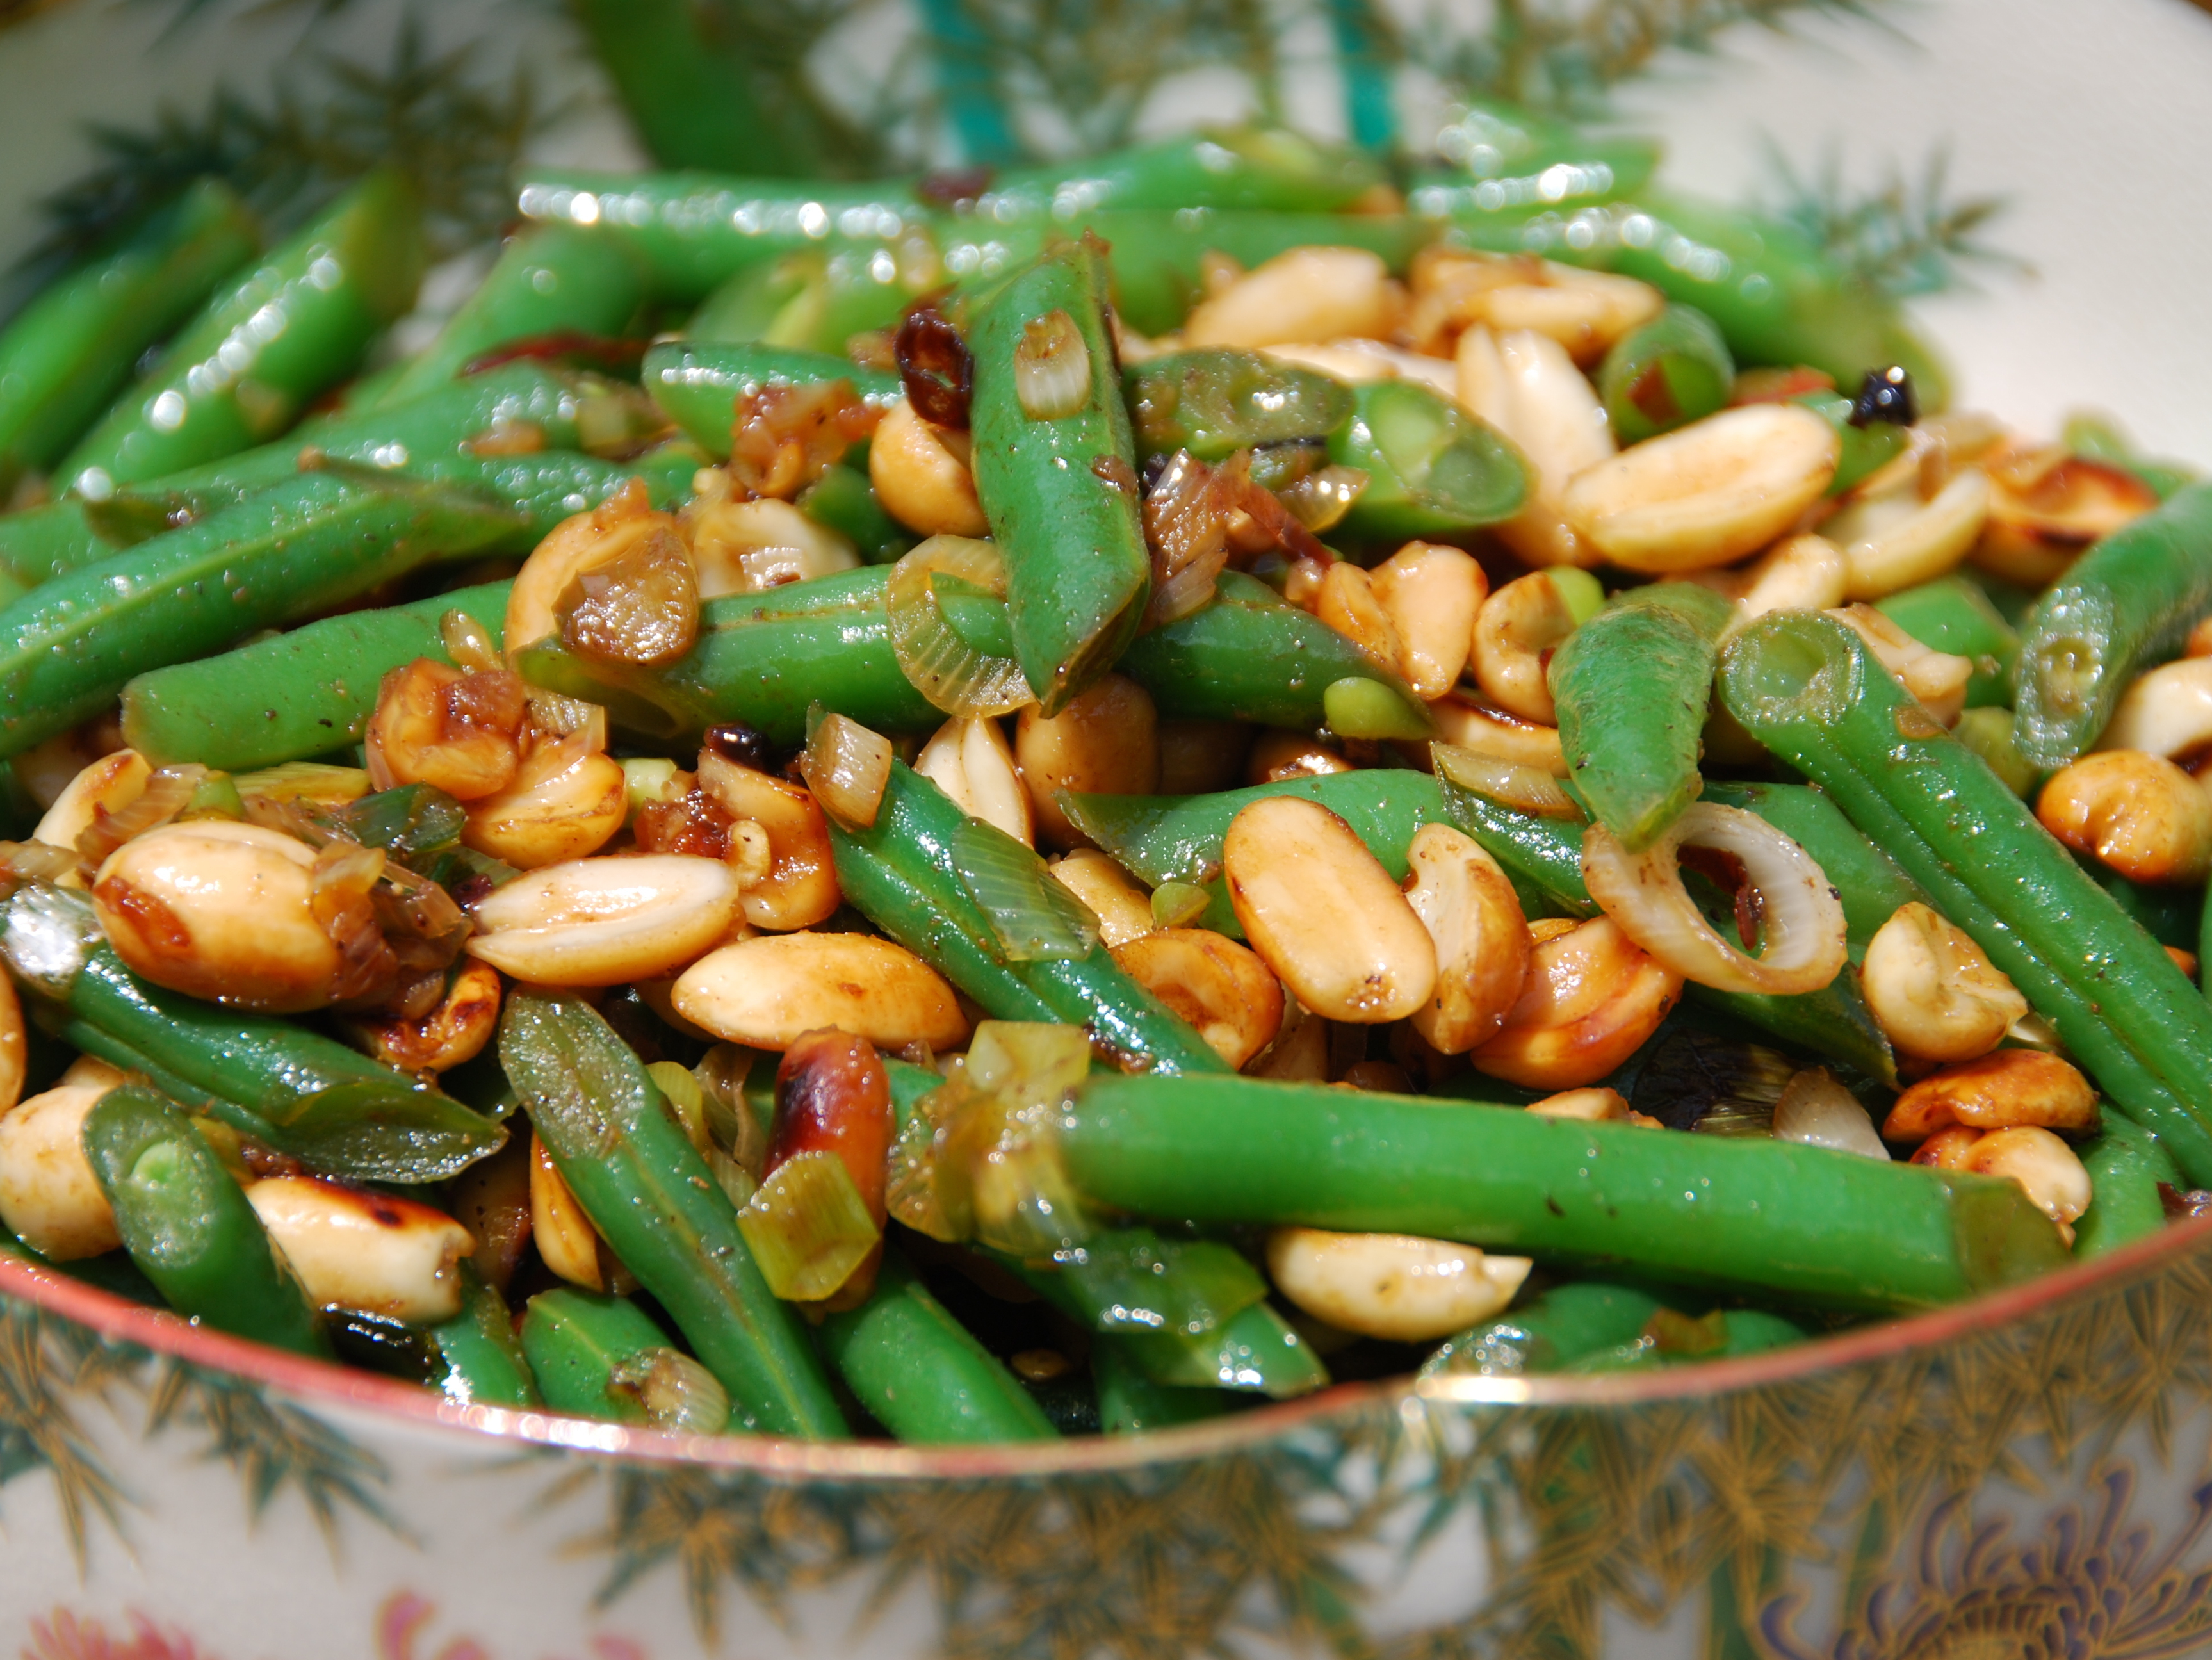 When Asian And Latin Food Collide: Spicy, Tasty Or Confused? | New  Hampshire Public Radio